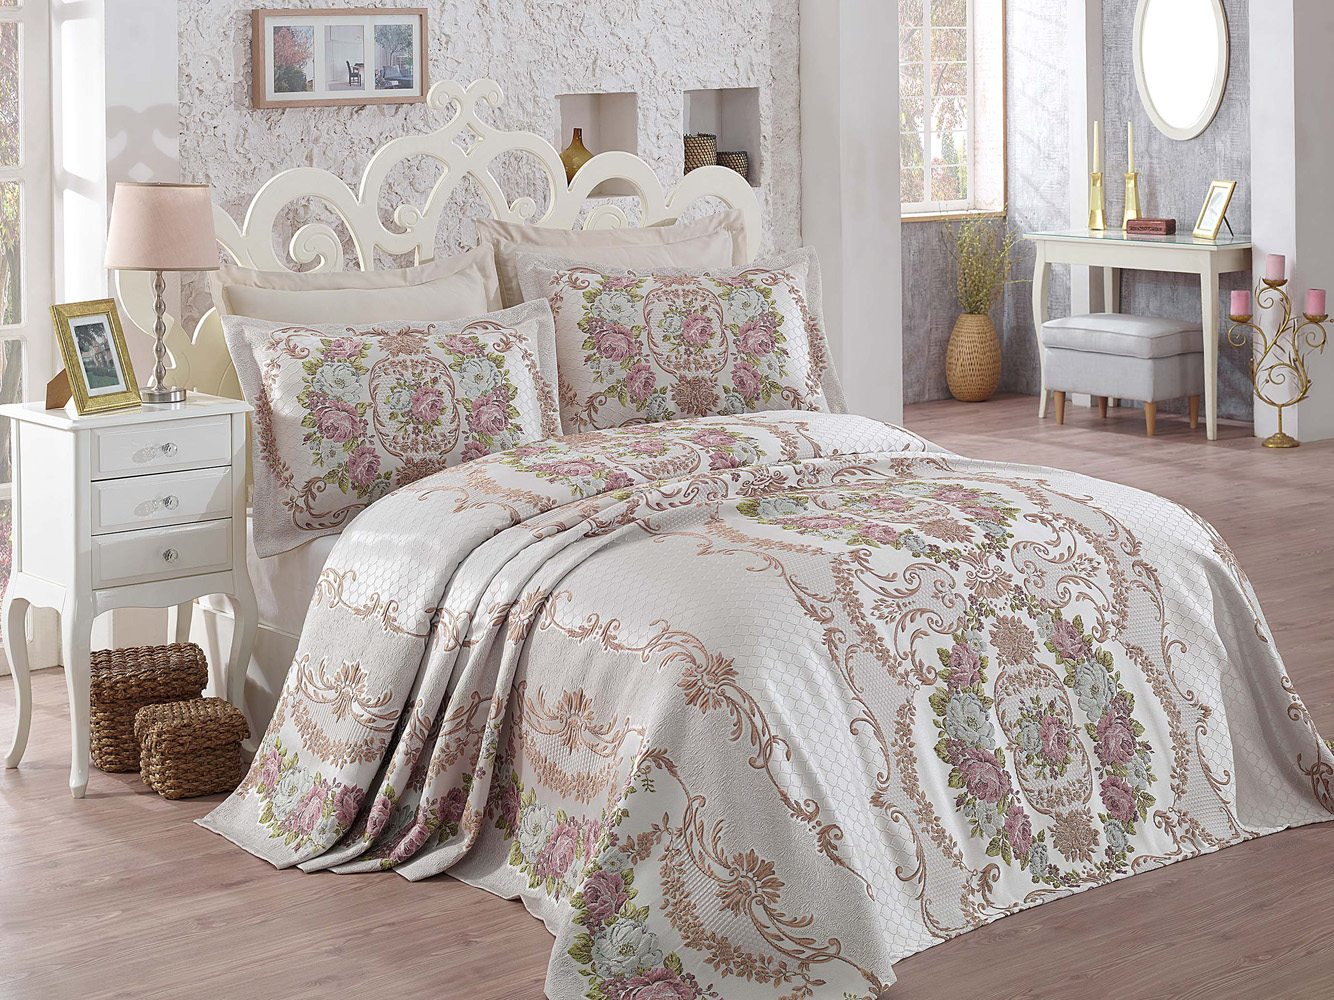 bedspread with embroidery and two decorative pillowcases